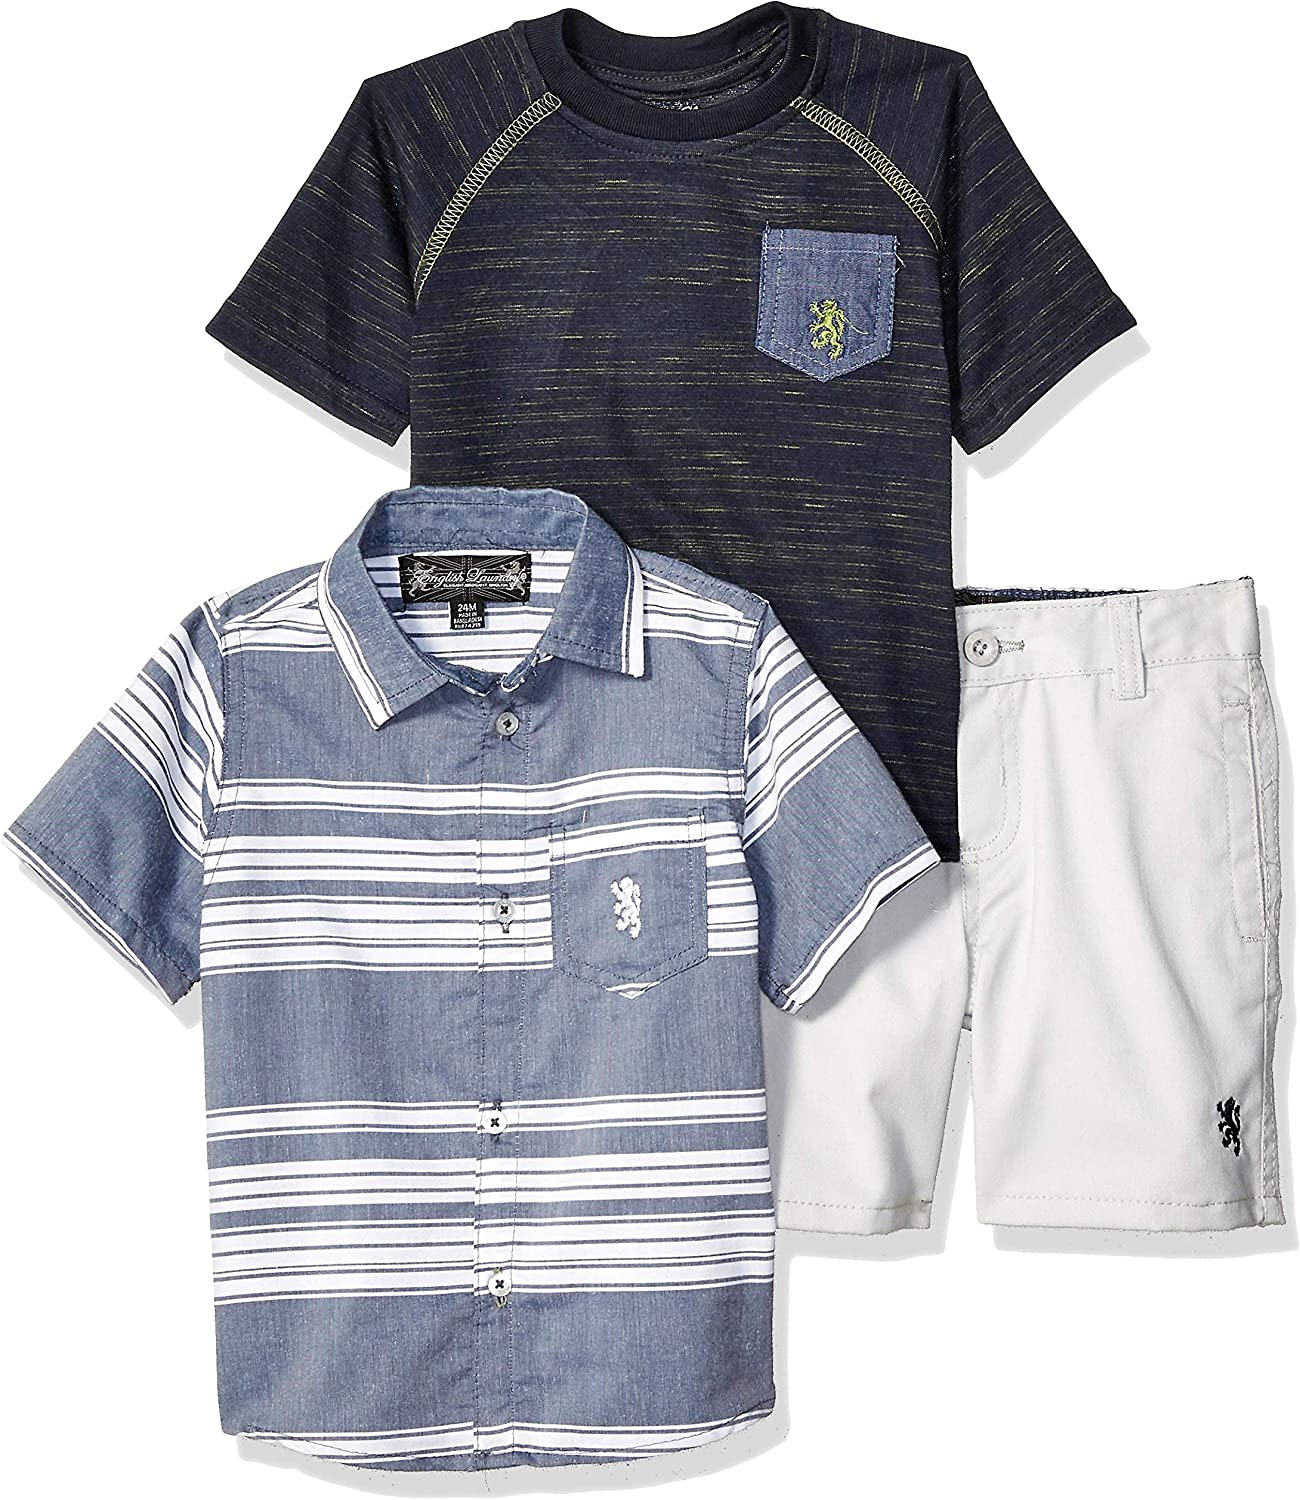 English Laundry Baby Boys Sleeve Woven, T-Shirt, and Short Set